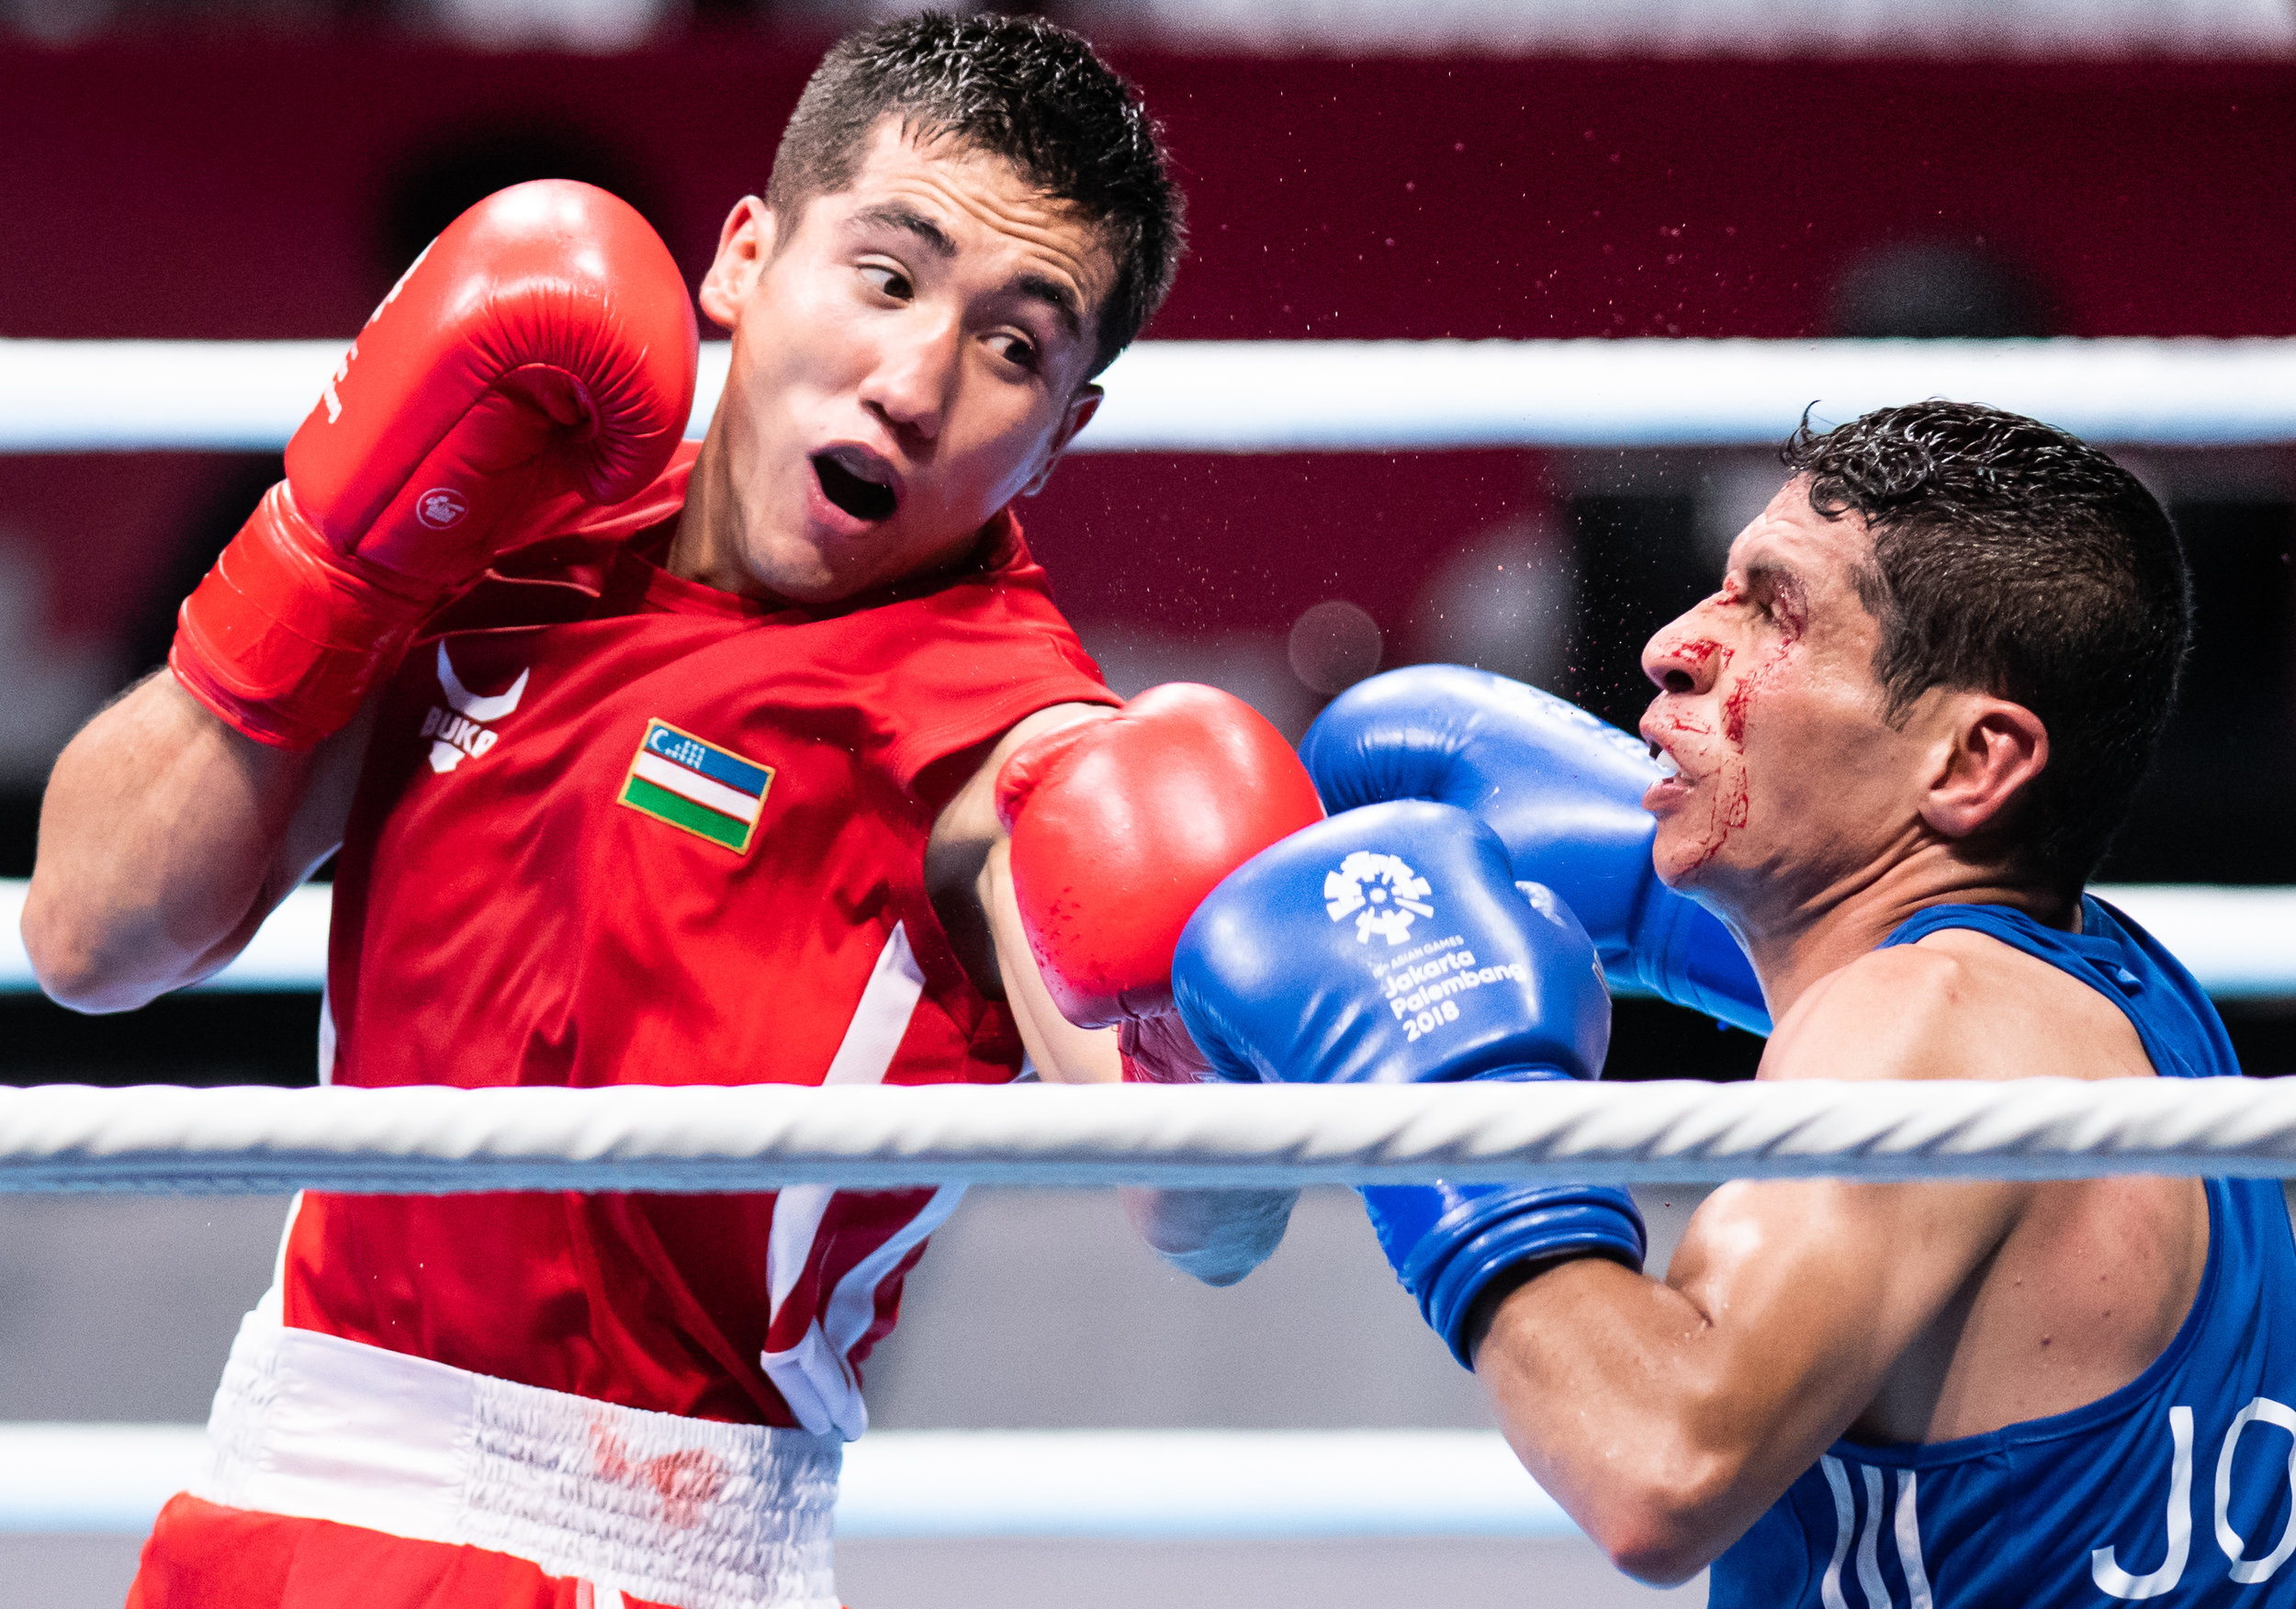 An Uzbek boxer punches his Jordanian opponent during the Bantam Weight match of the Asian Games at the Jakarta International Expo.